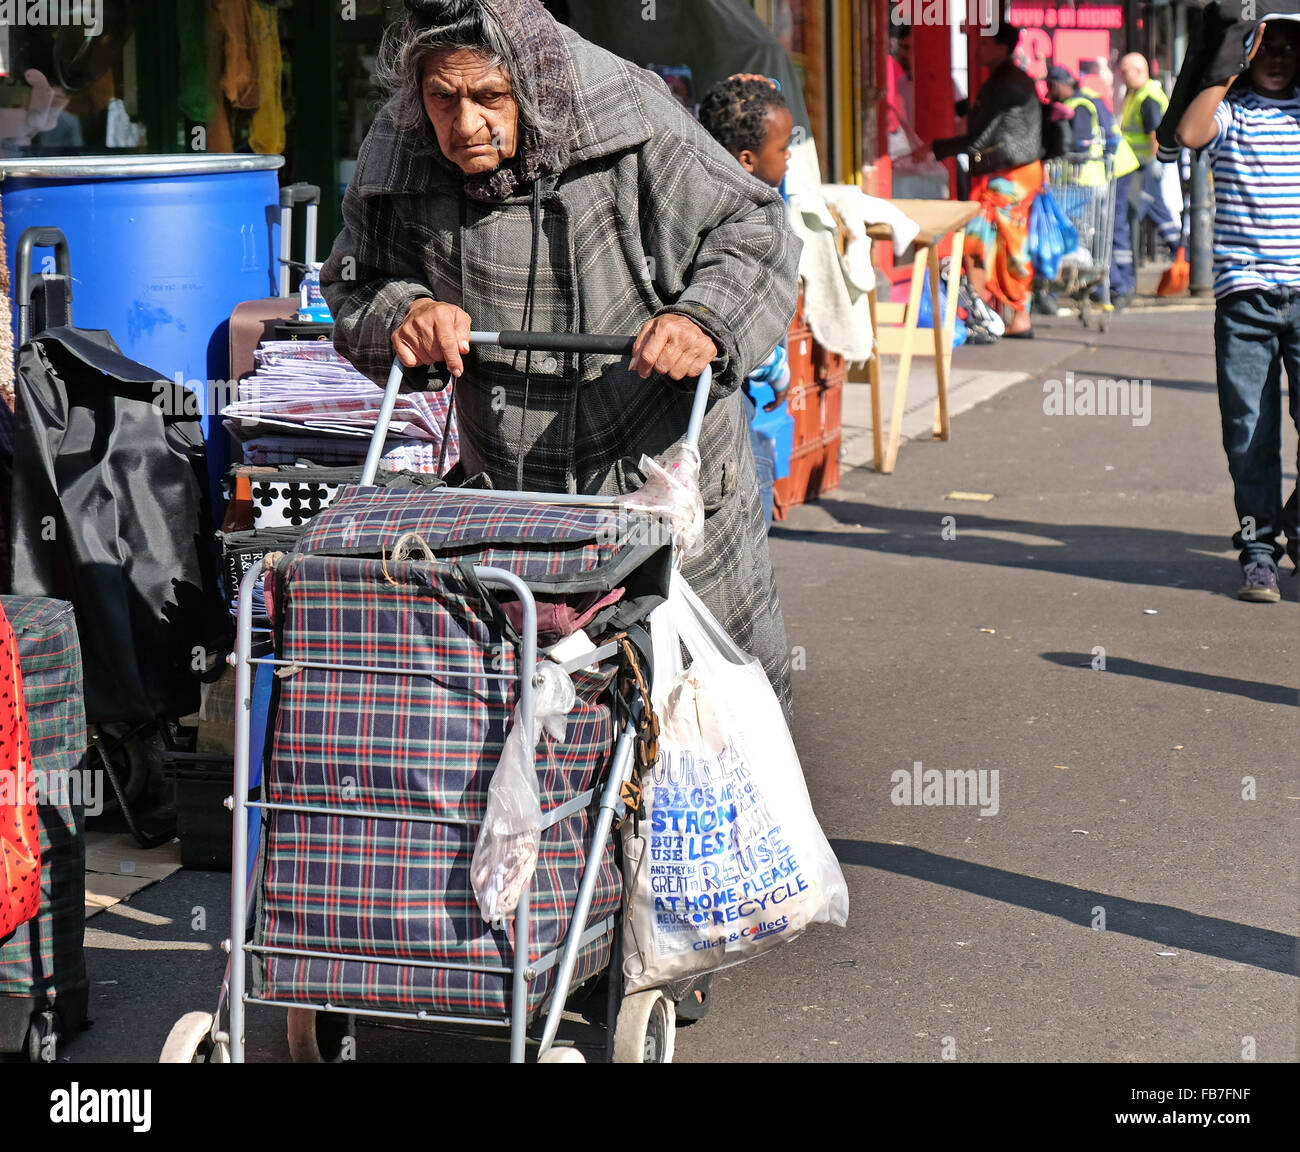 An elderly woman with a trolley shopping in streets of Brixton South London - Stock Image